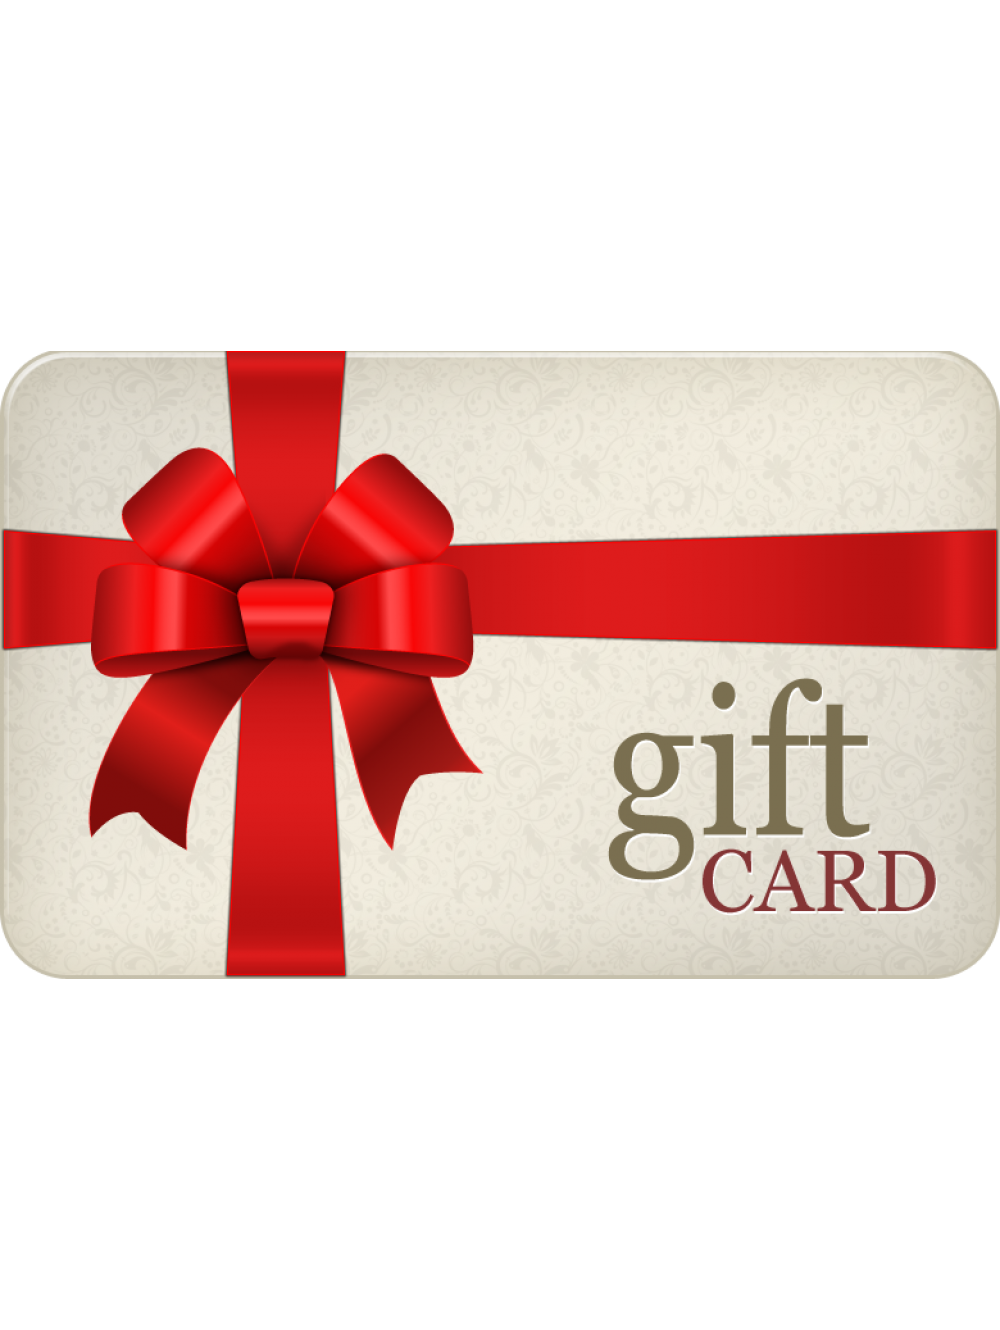 how to use walmart gift card on vudu